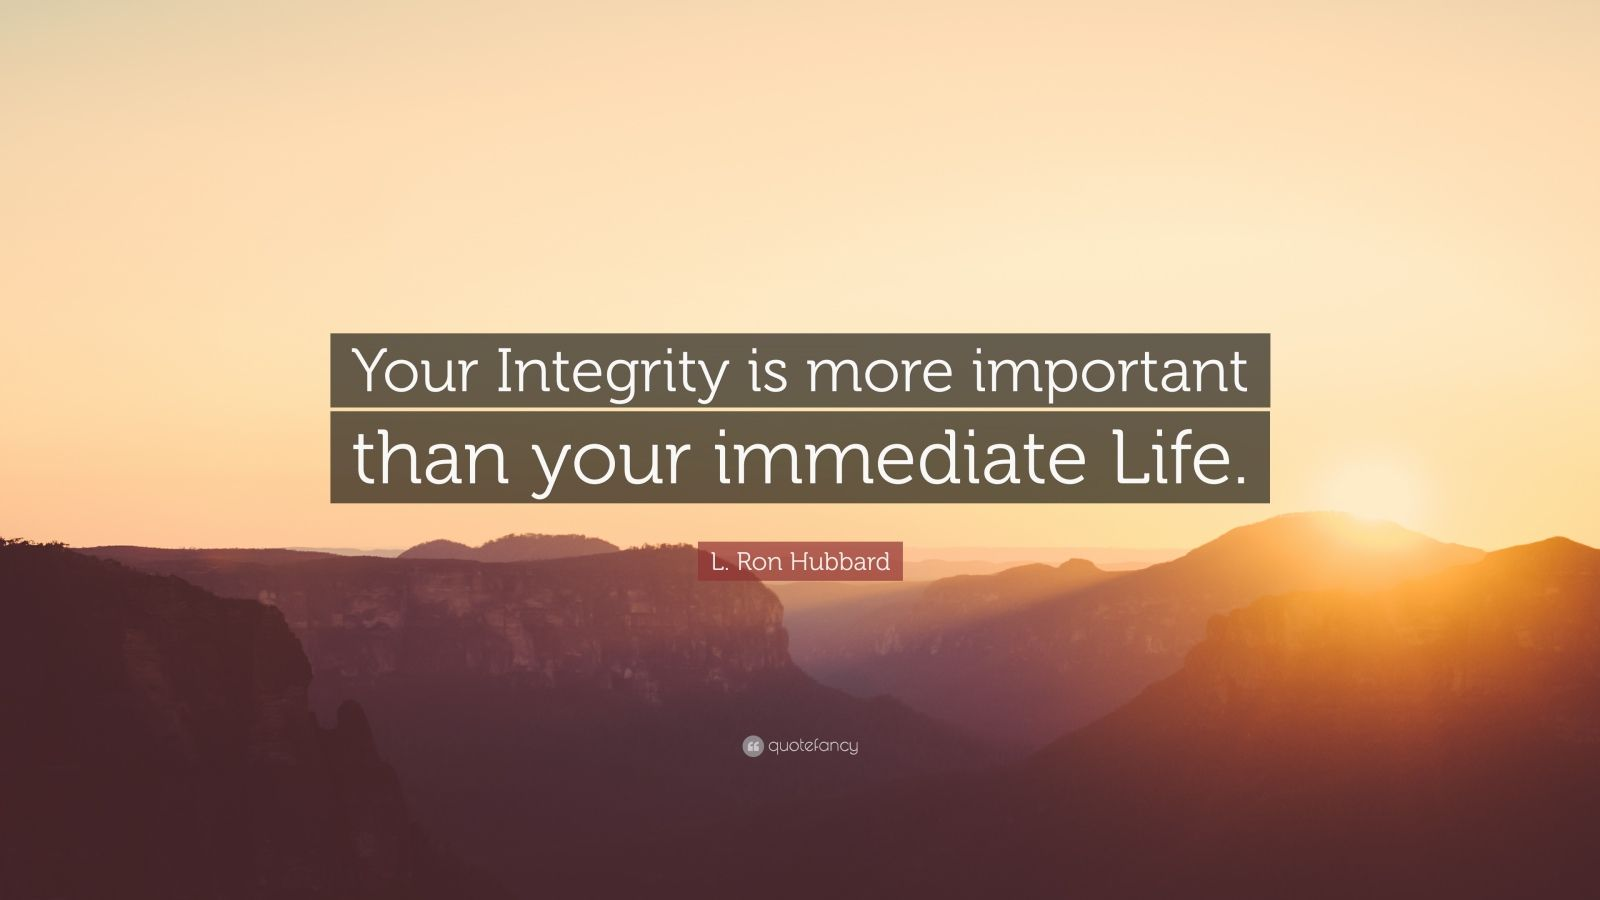 Why leaders need to have integrity